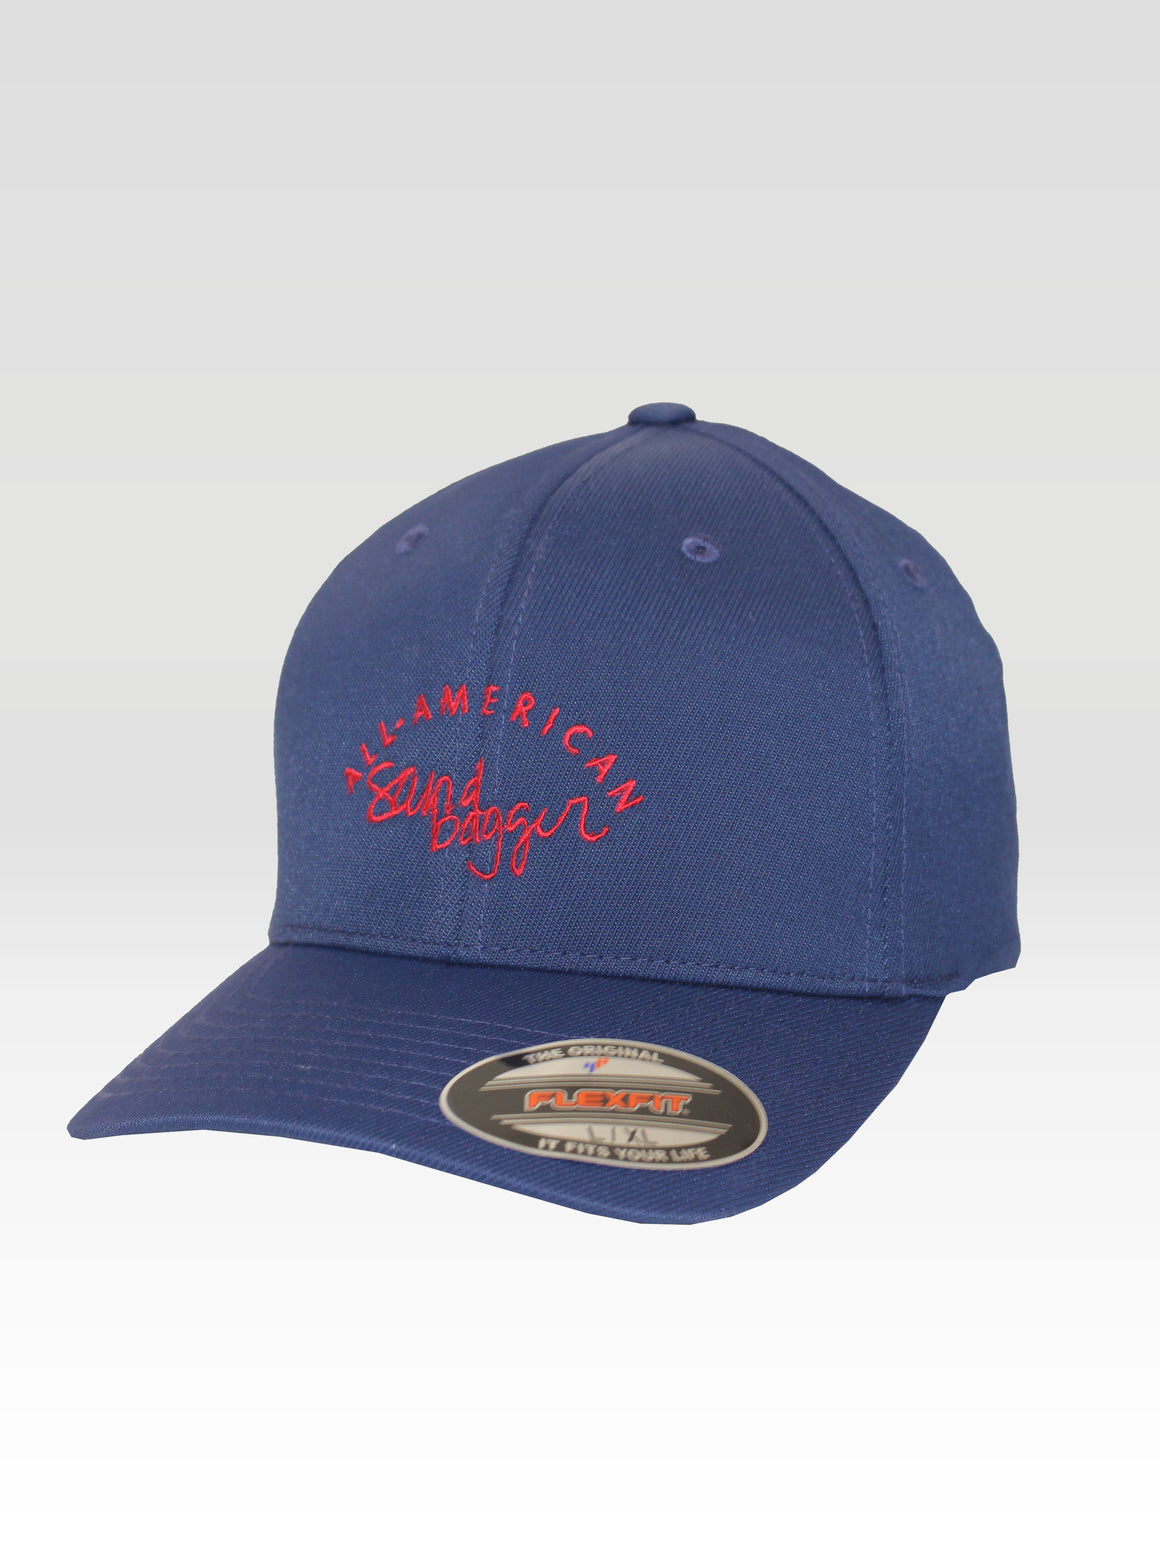 All American Sandbagger Sport Hat - Navy (Red)